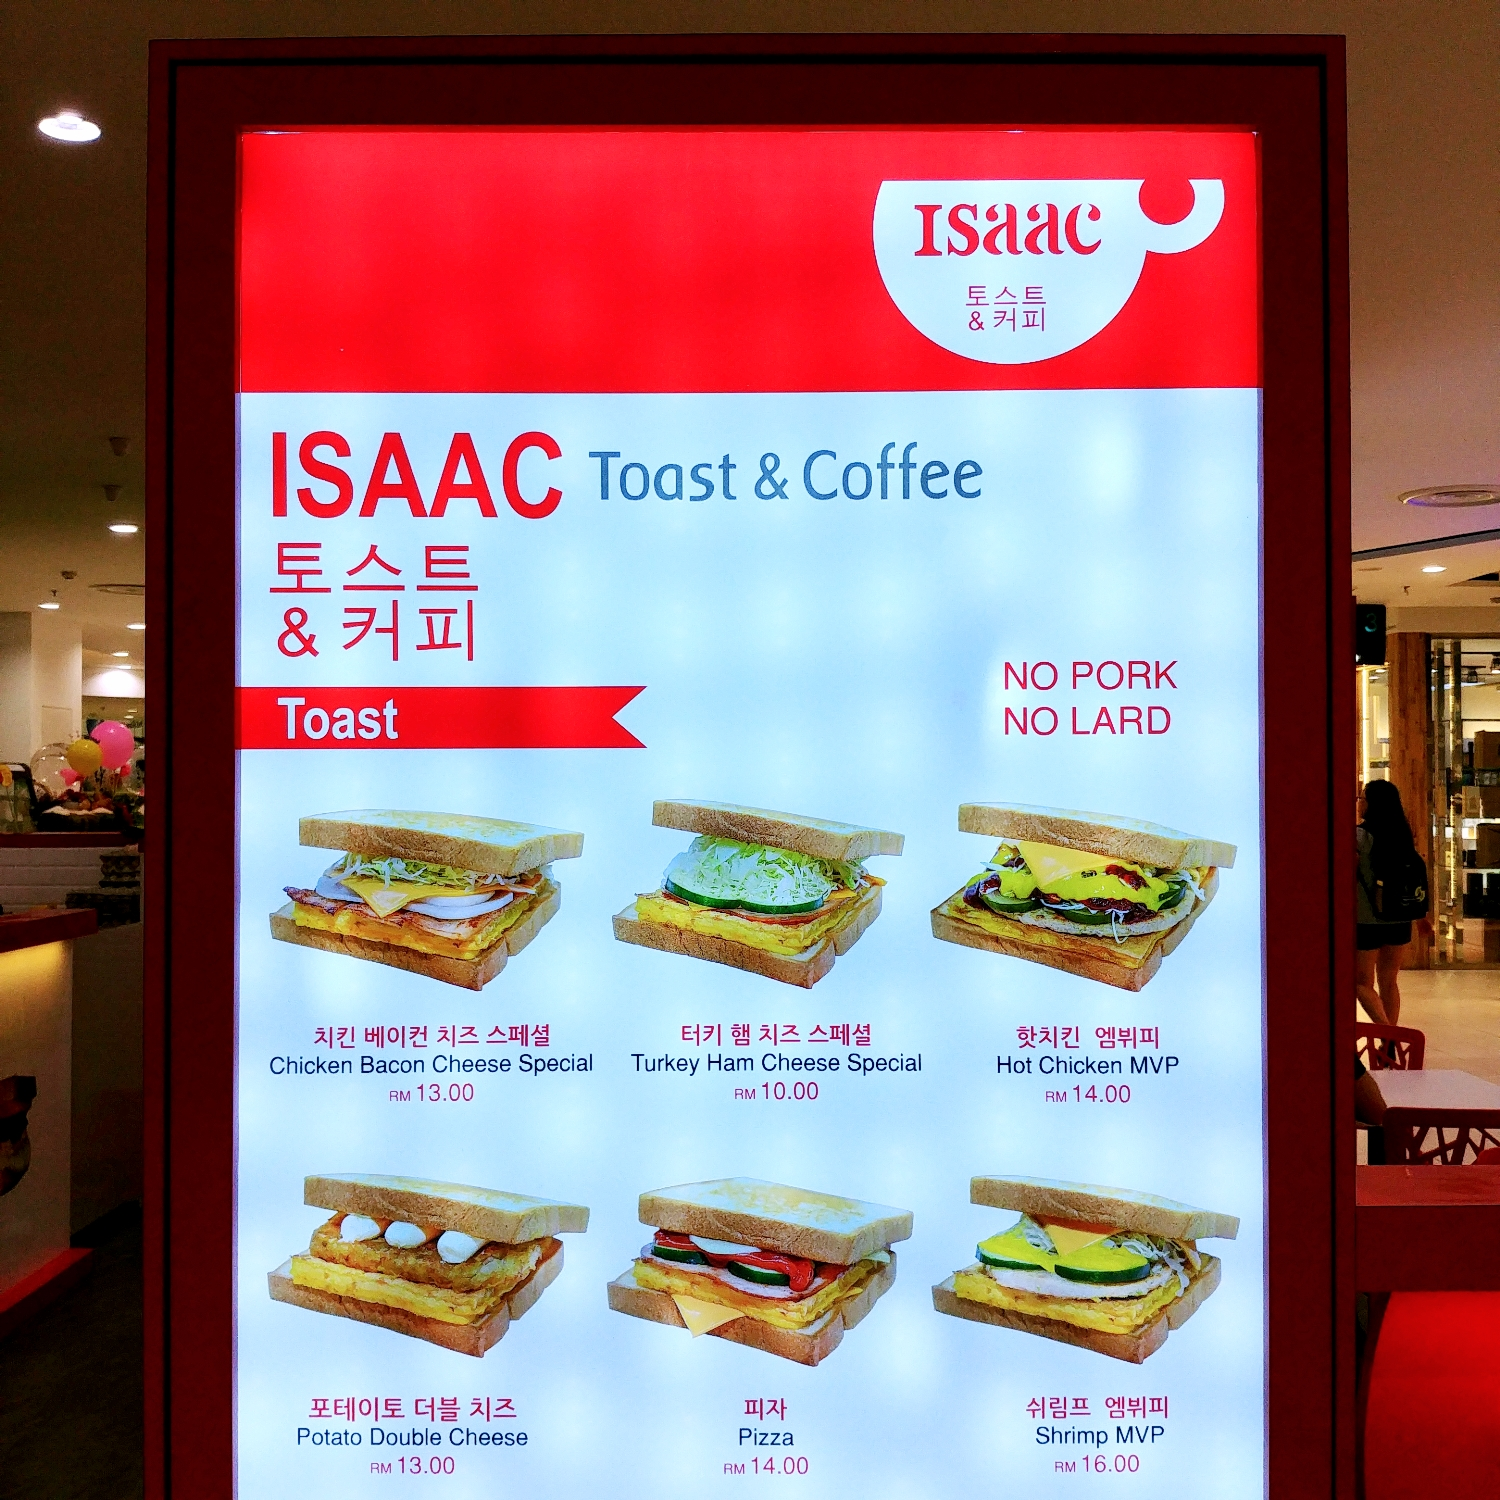 Isaac Toast & Coffee @ Paradigm Mall